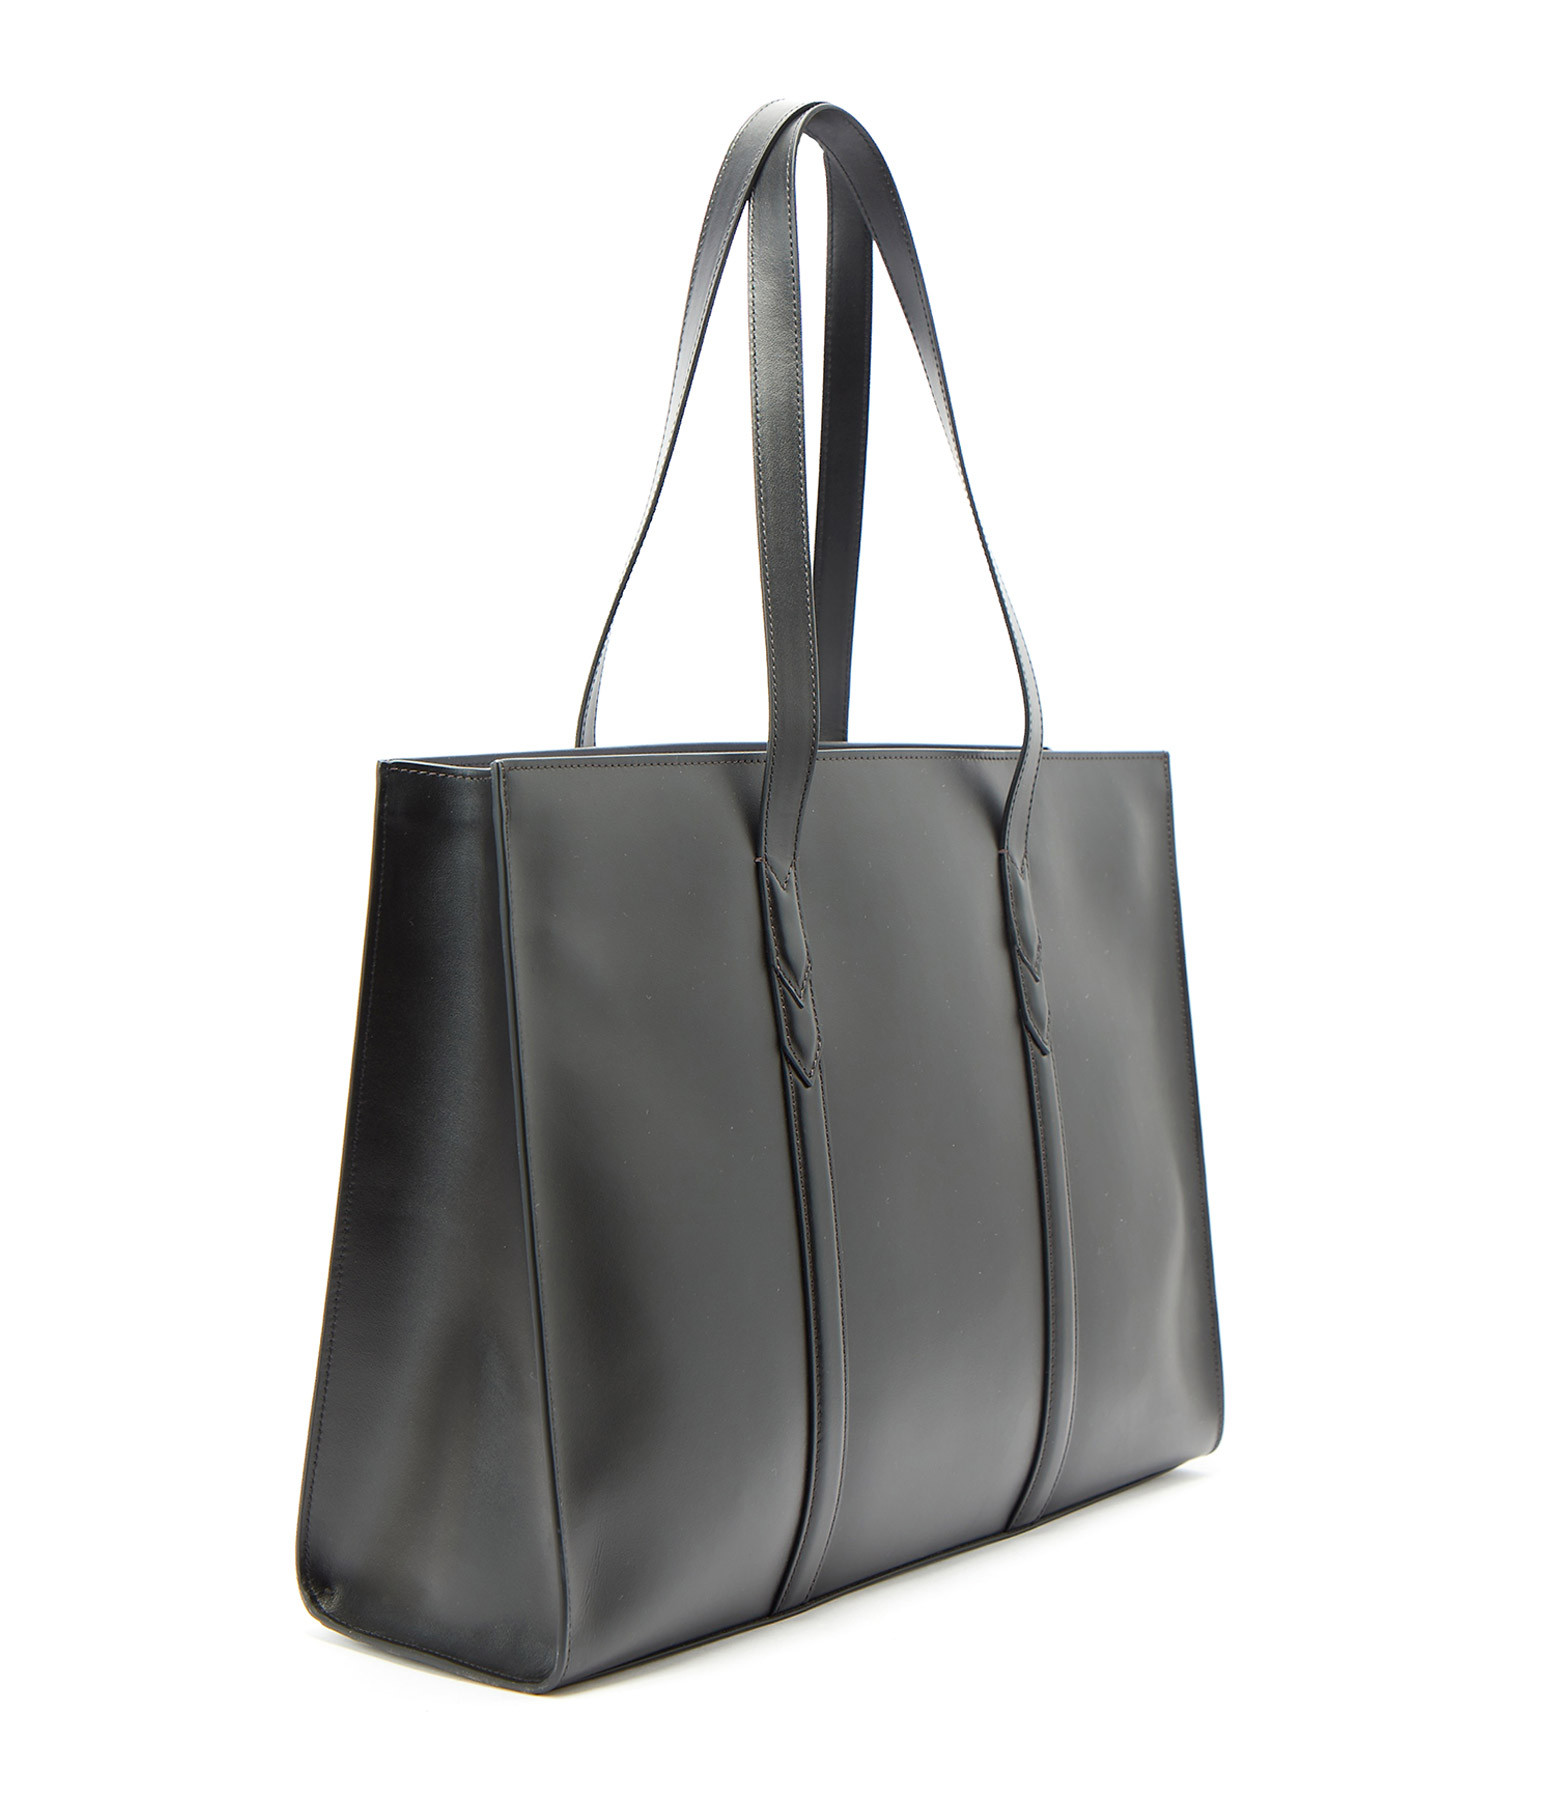 ZADIG & VOLTAIRE - Sac ZV Initiale Le Tote Cuir Noir